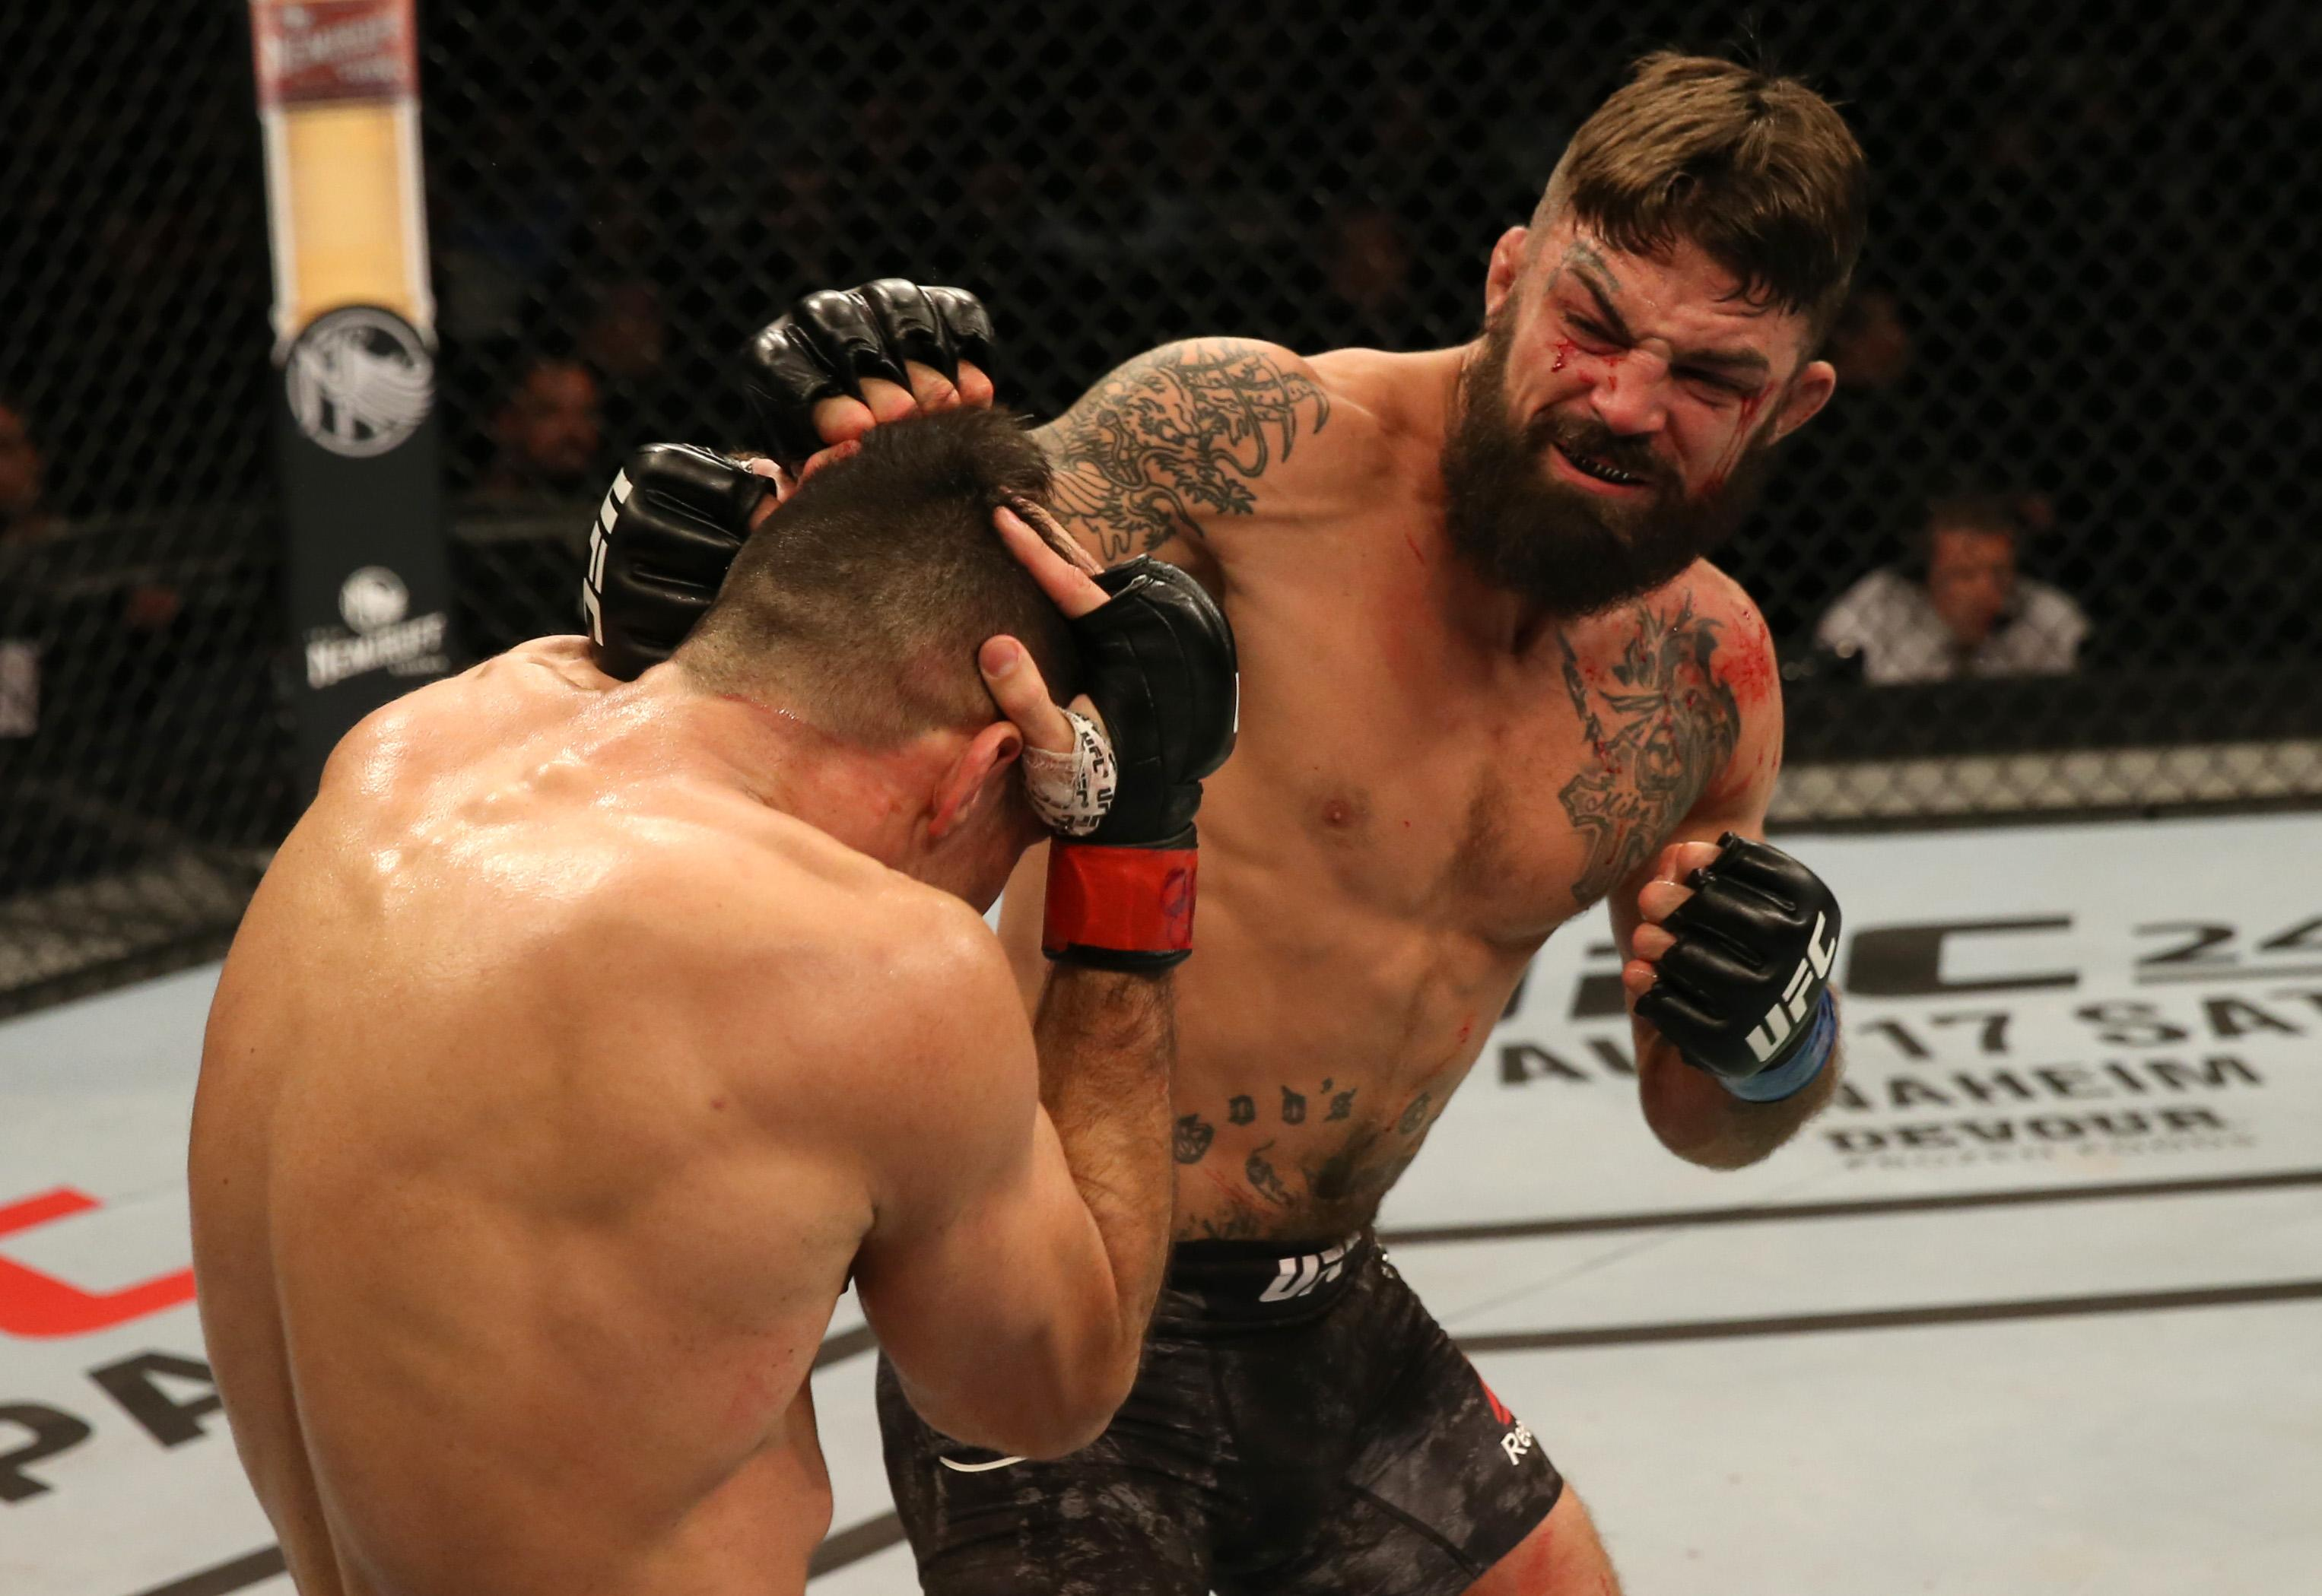 UFC's Mike Perry claims he only has '$6' in bank account